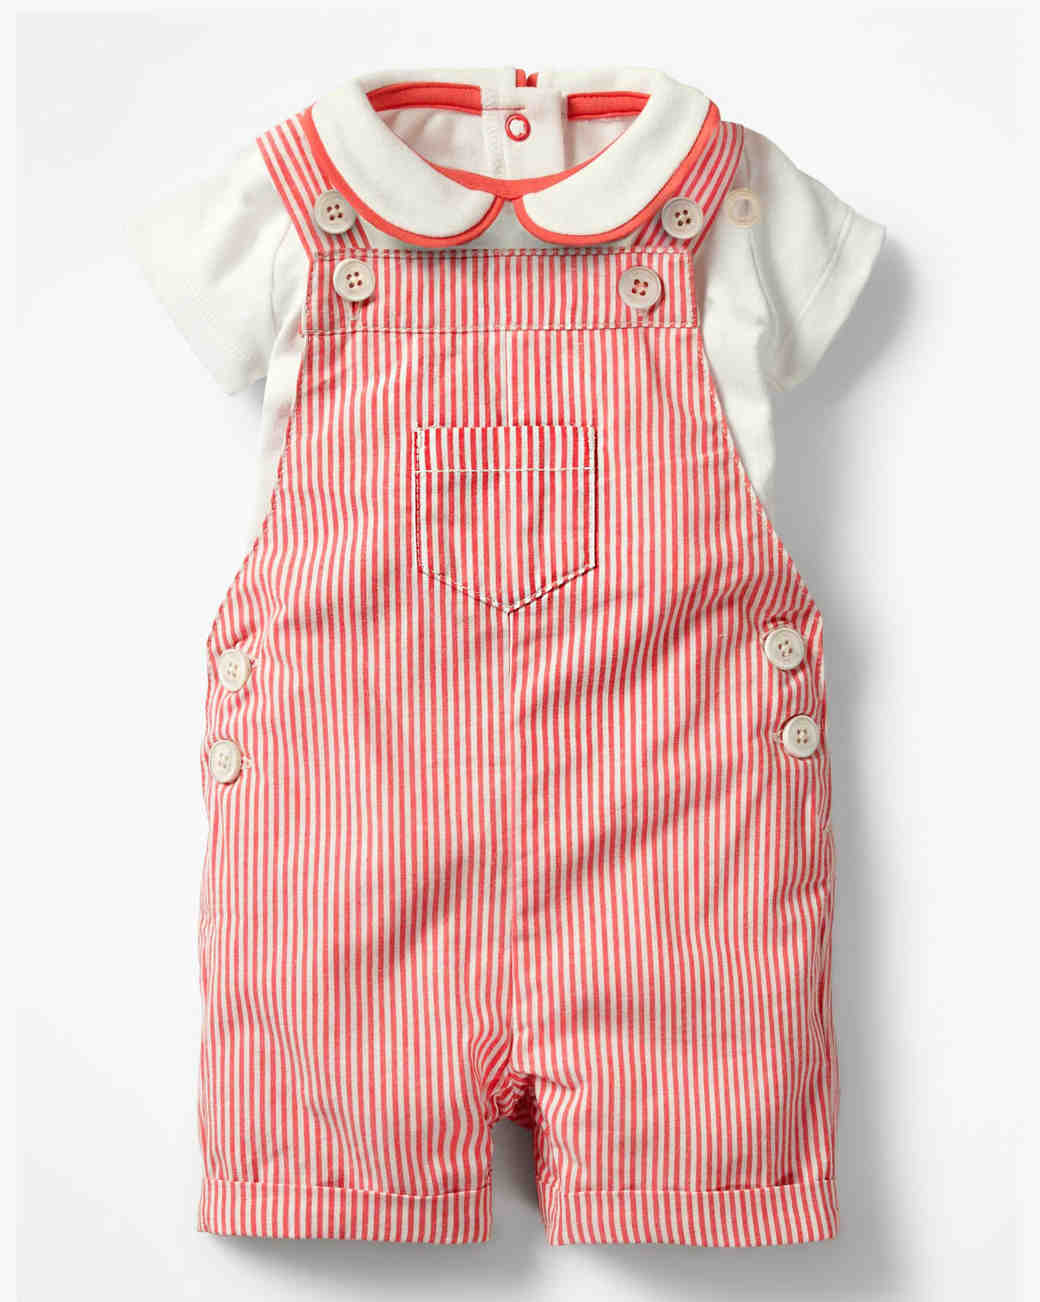 Summer Ring Bearer Attire, Red Overall Set Boden